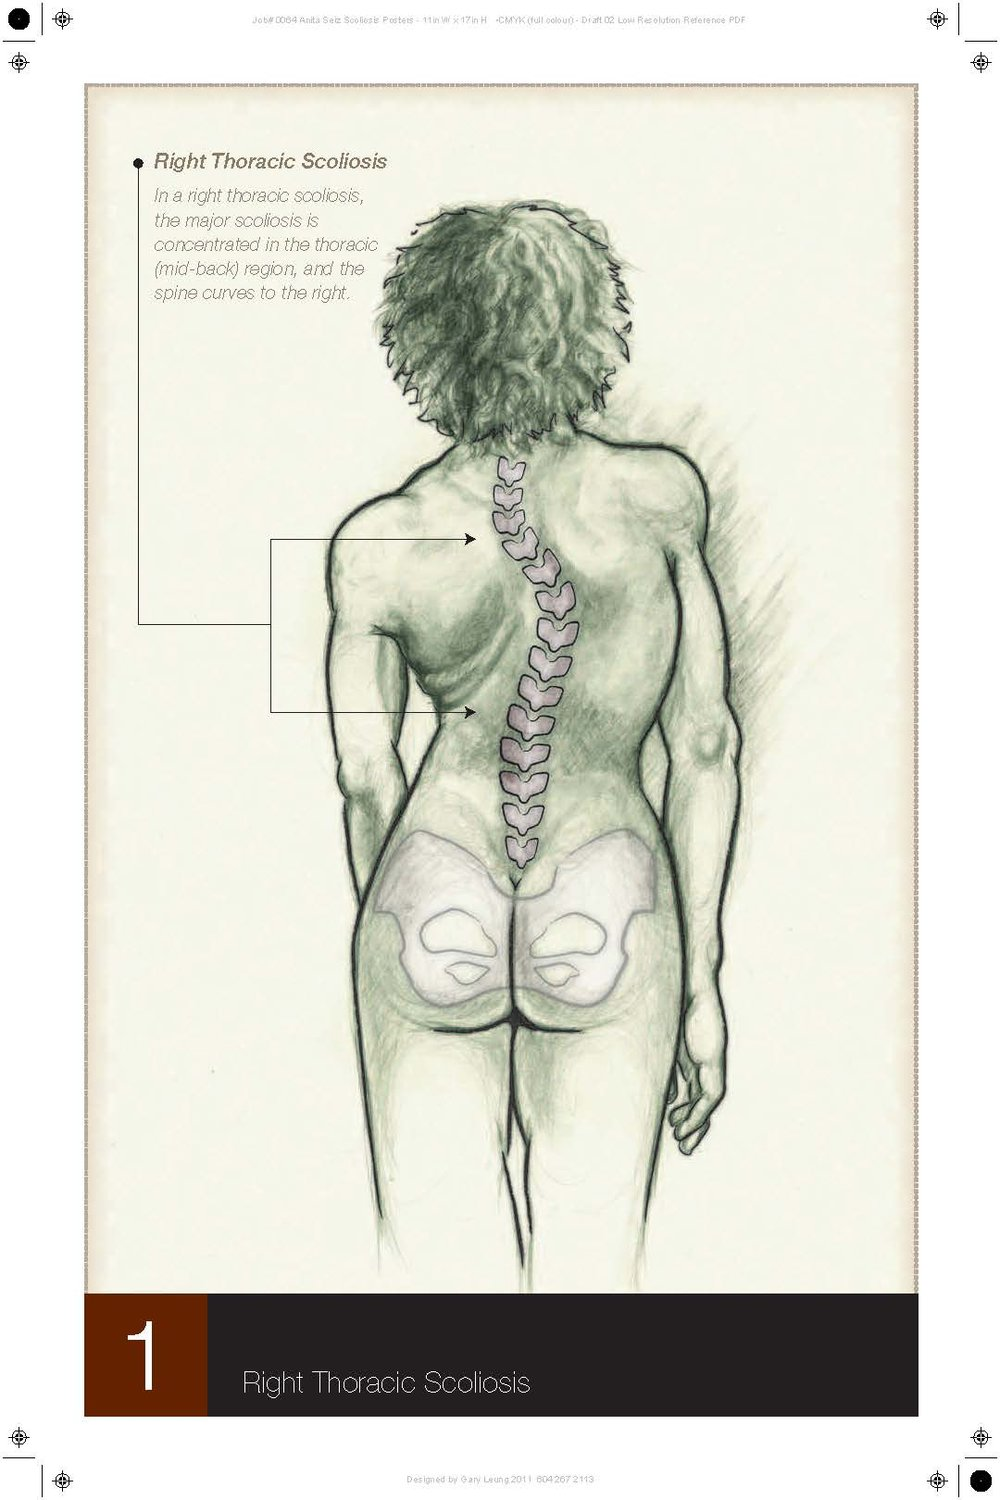 Scoliosis Curve - Thoracic Spine.jpg